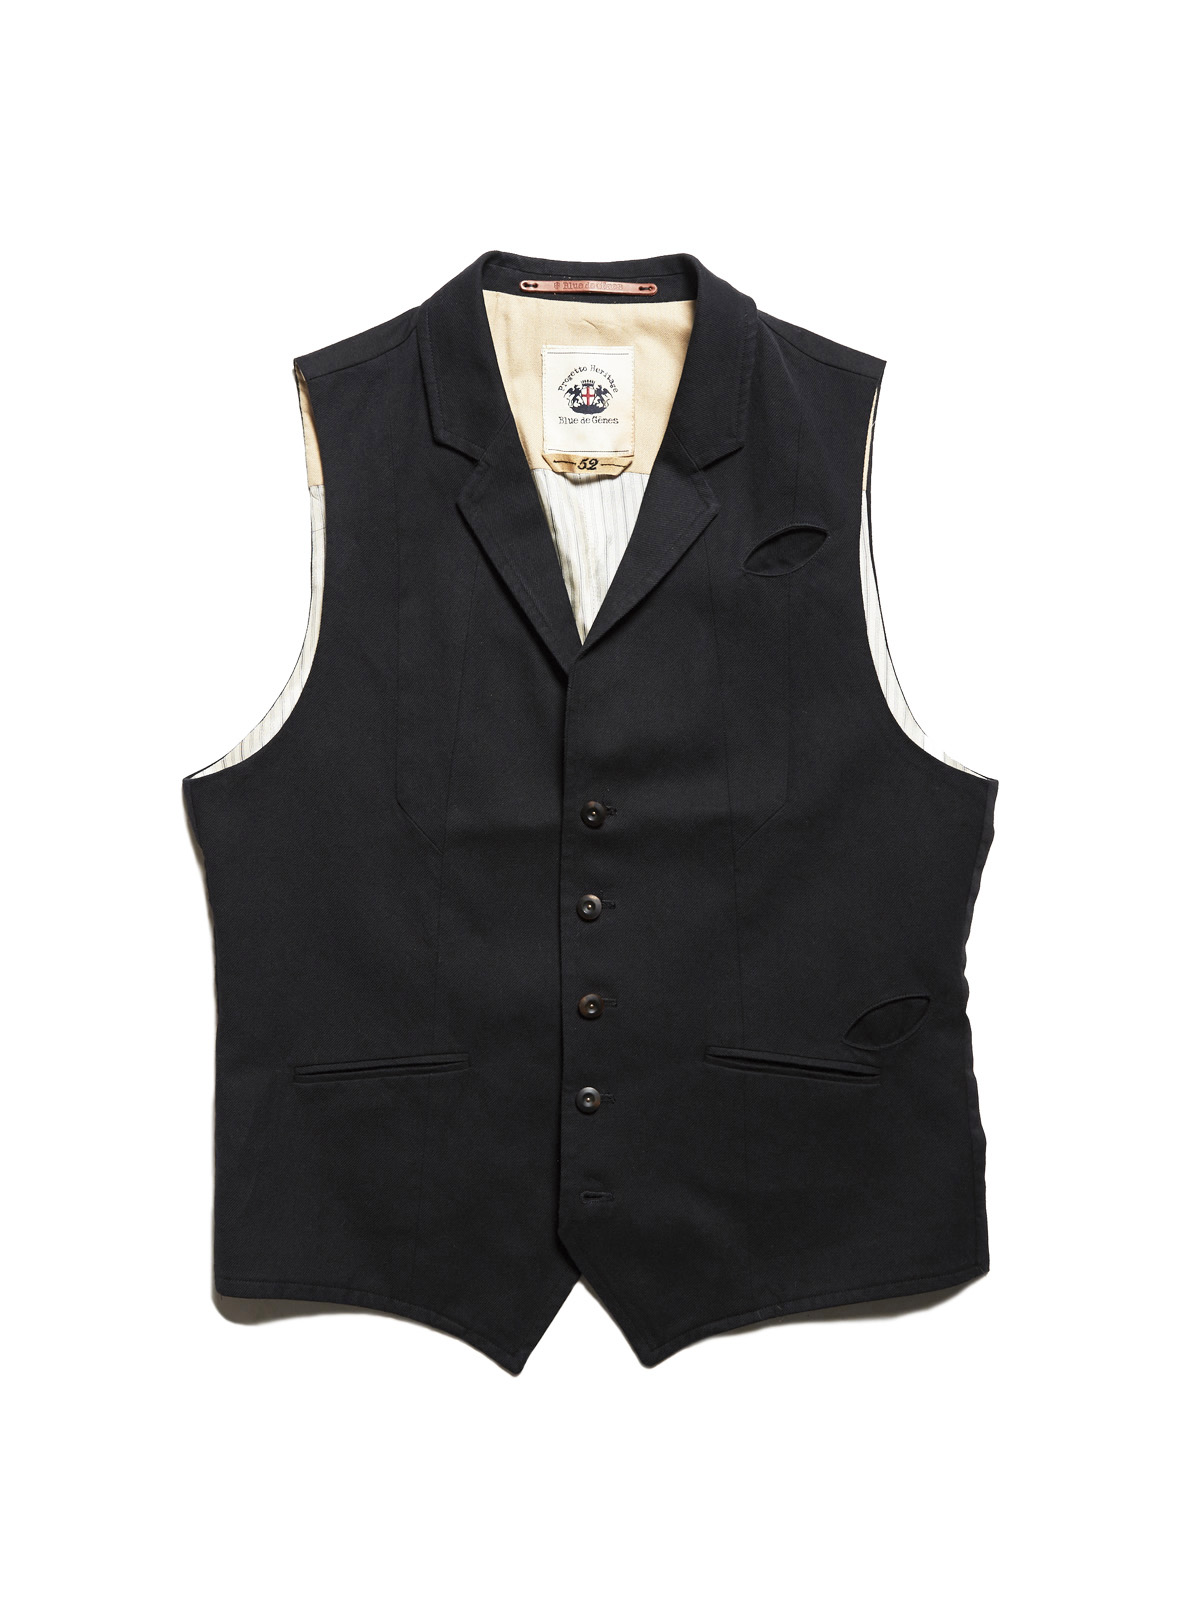 blue-de-genes-waistcoat-long-john-blog-denmark-clothing-brand-branding-clothes-jeans-denim-bluedegenes-genua-genes-4 (2)